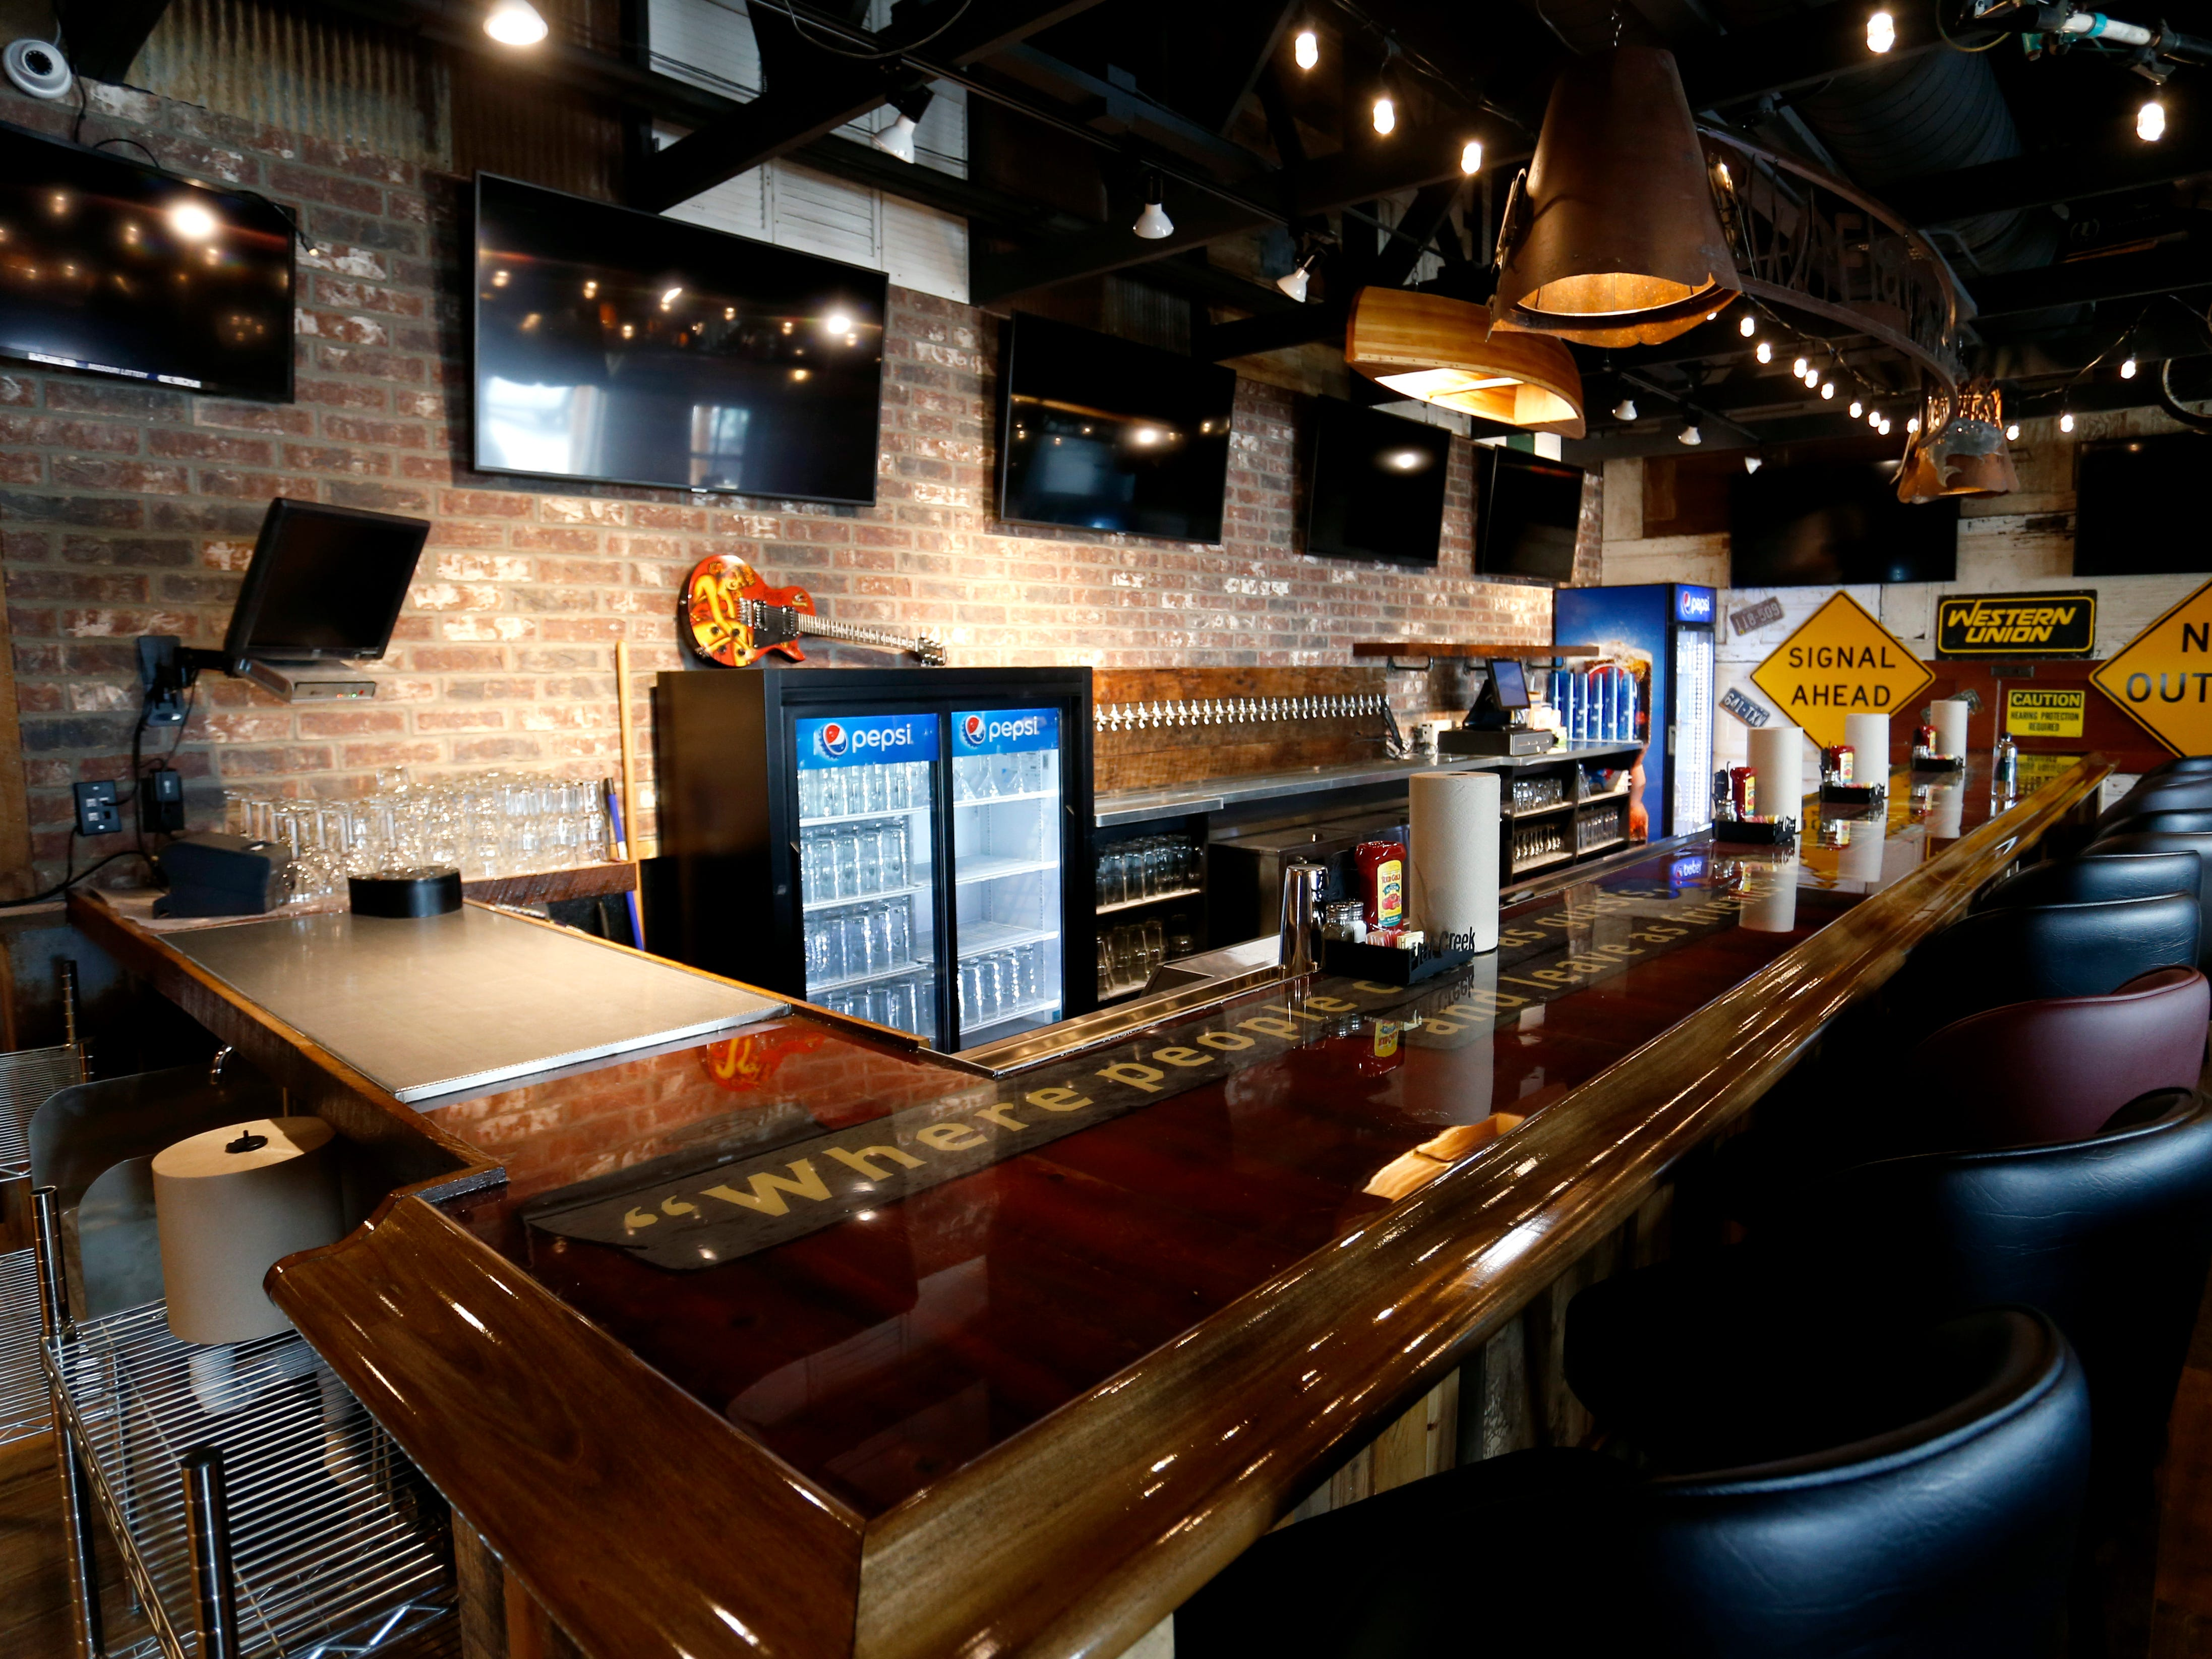 A bar area with 30 beer taps at the new location of Flat Creek restaurant in Republic that opens next week.